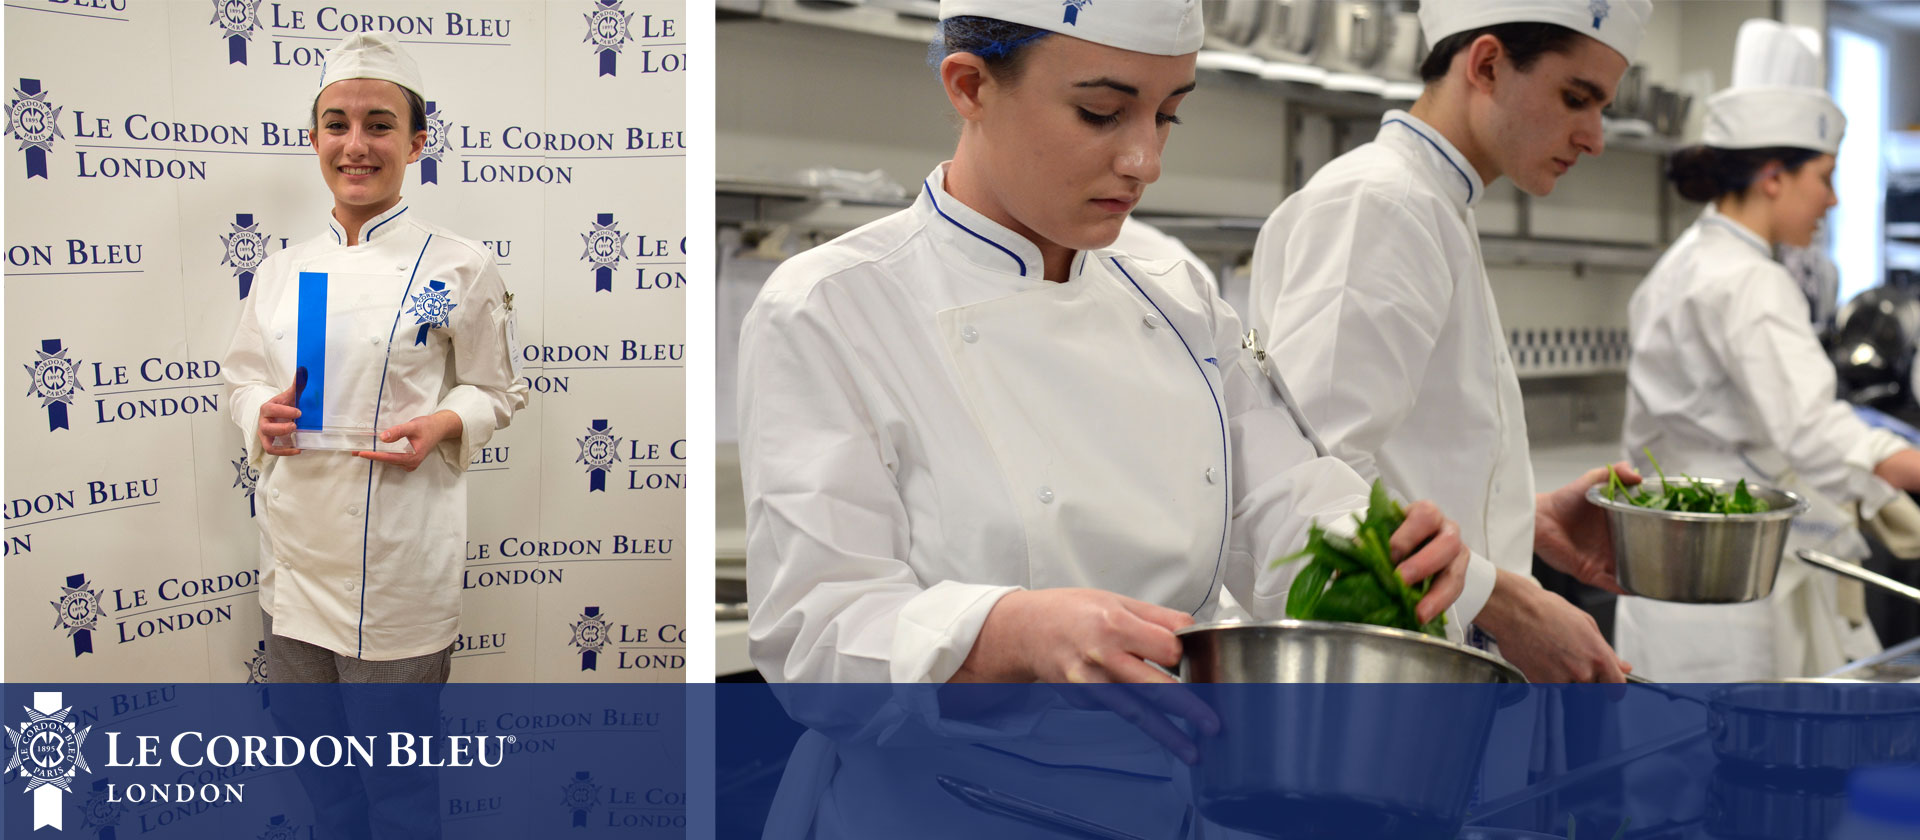 Alumna Zoe McReynolds - Le Cordon Bleu London